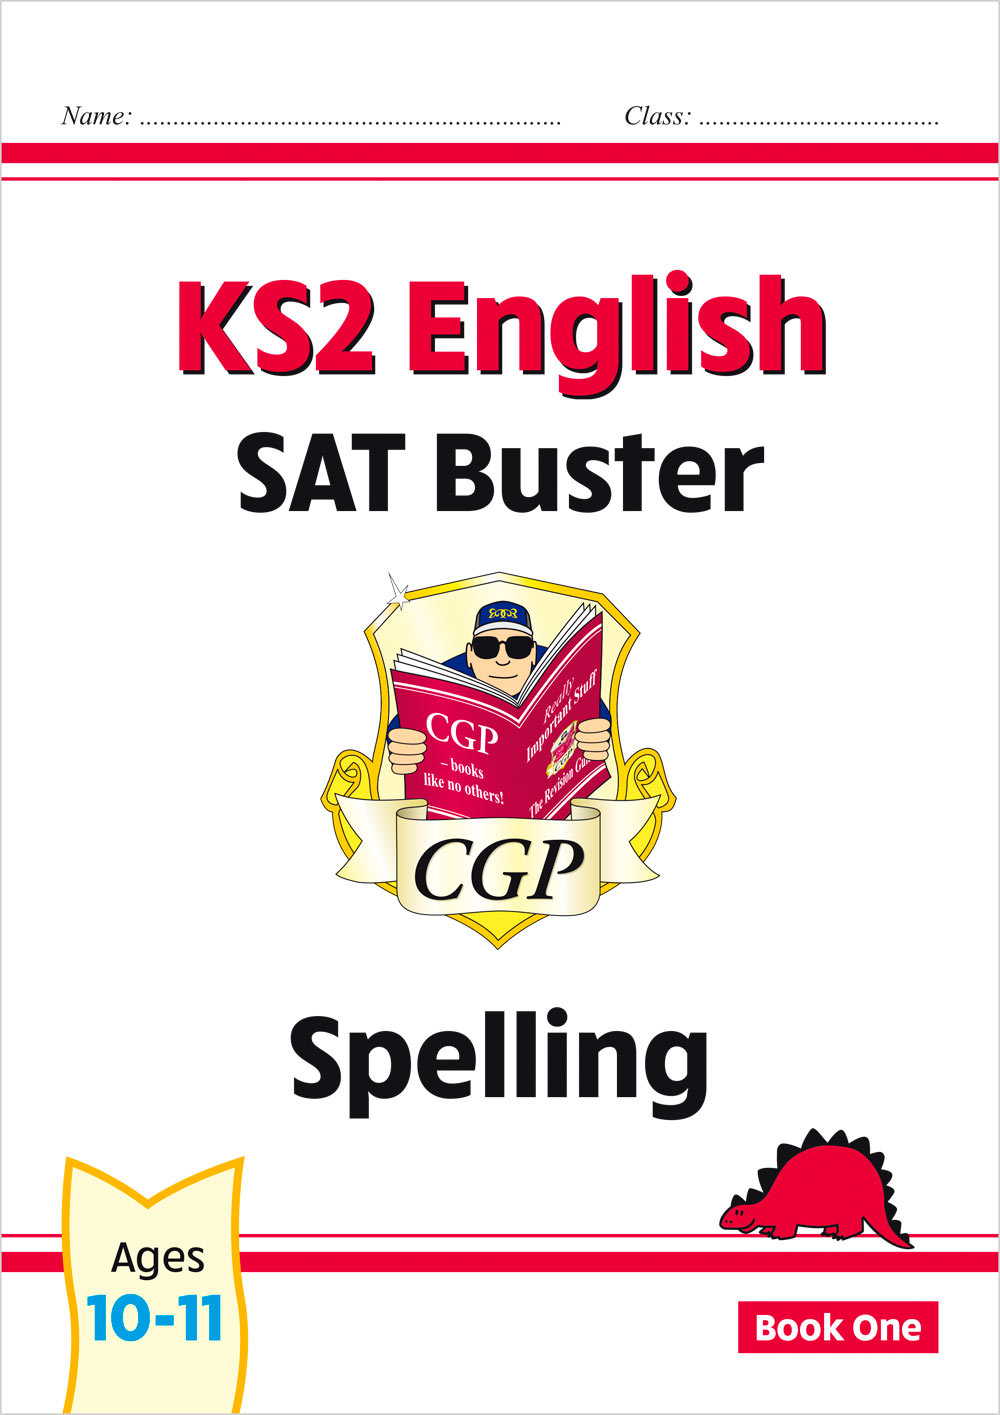 E6S24 - New KS2 English SAT Buster: Spelling - Book 1